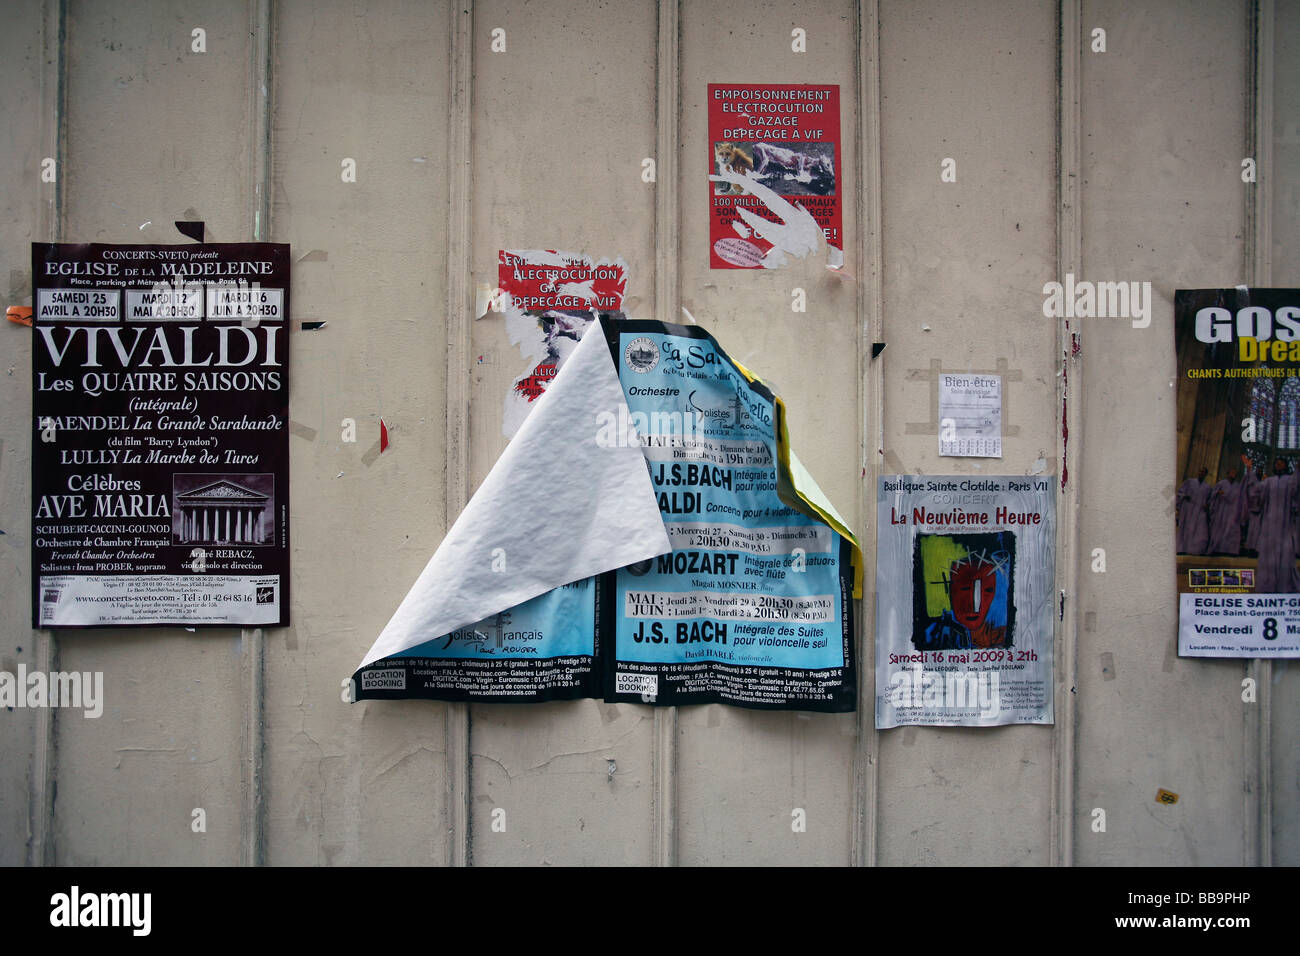 Paris wall advertising posters announcements - Stock Image